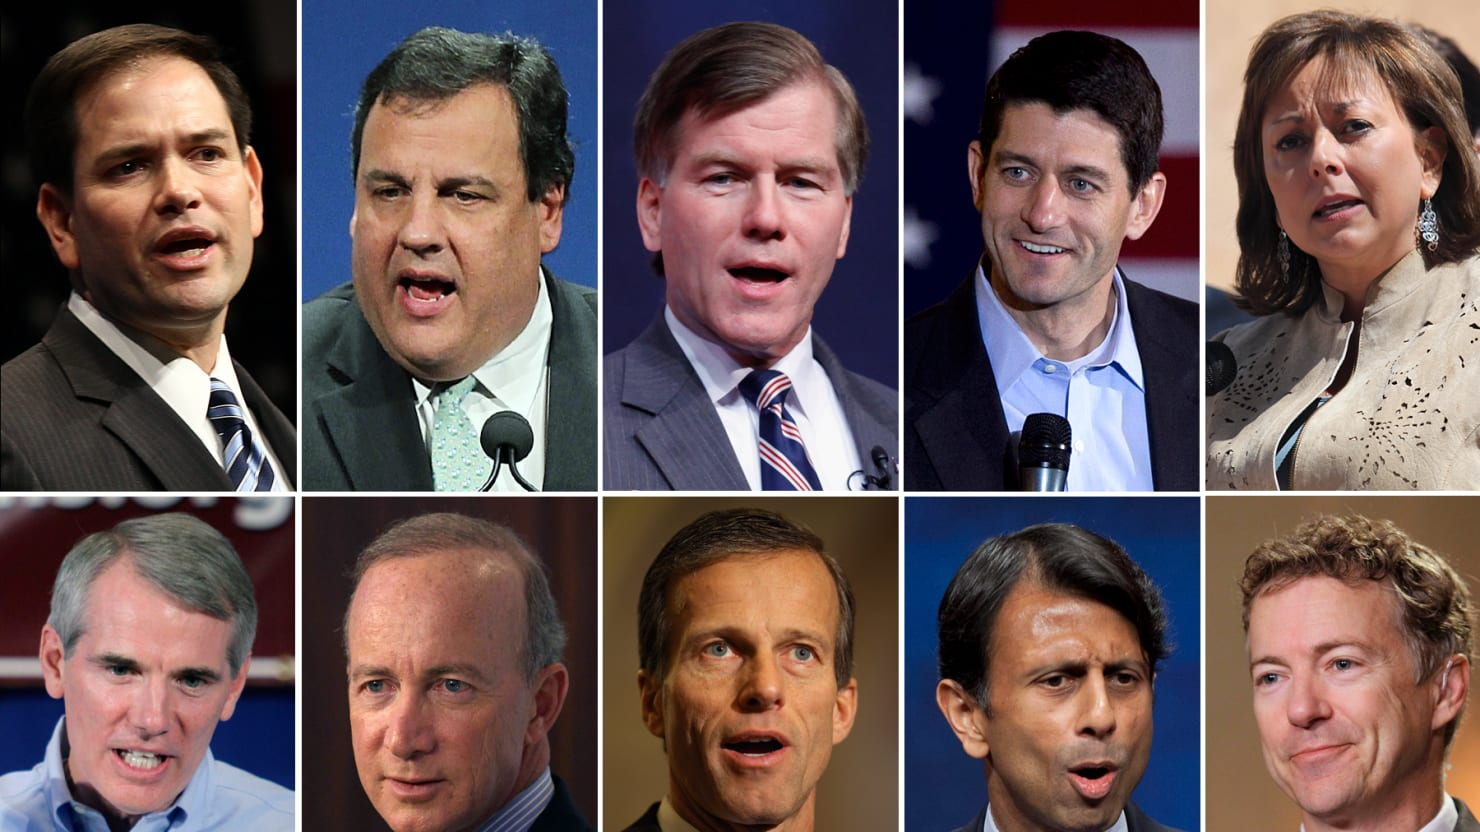 Romney vp betting tips continuation betting micro stakes